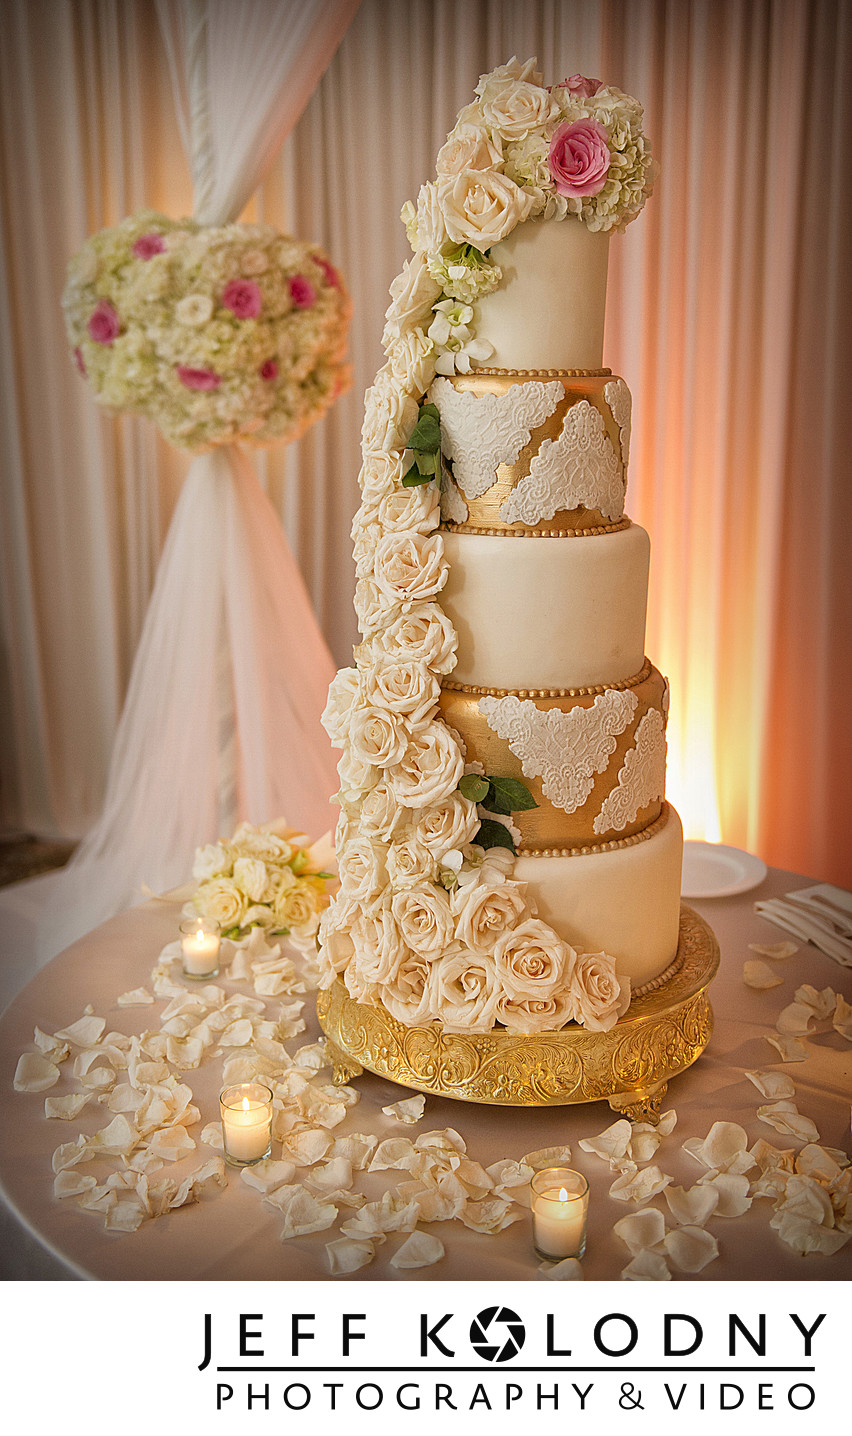 Wedding cake photo taken at the Eau Palm Beach